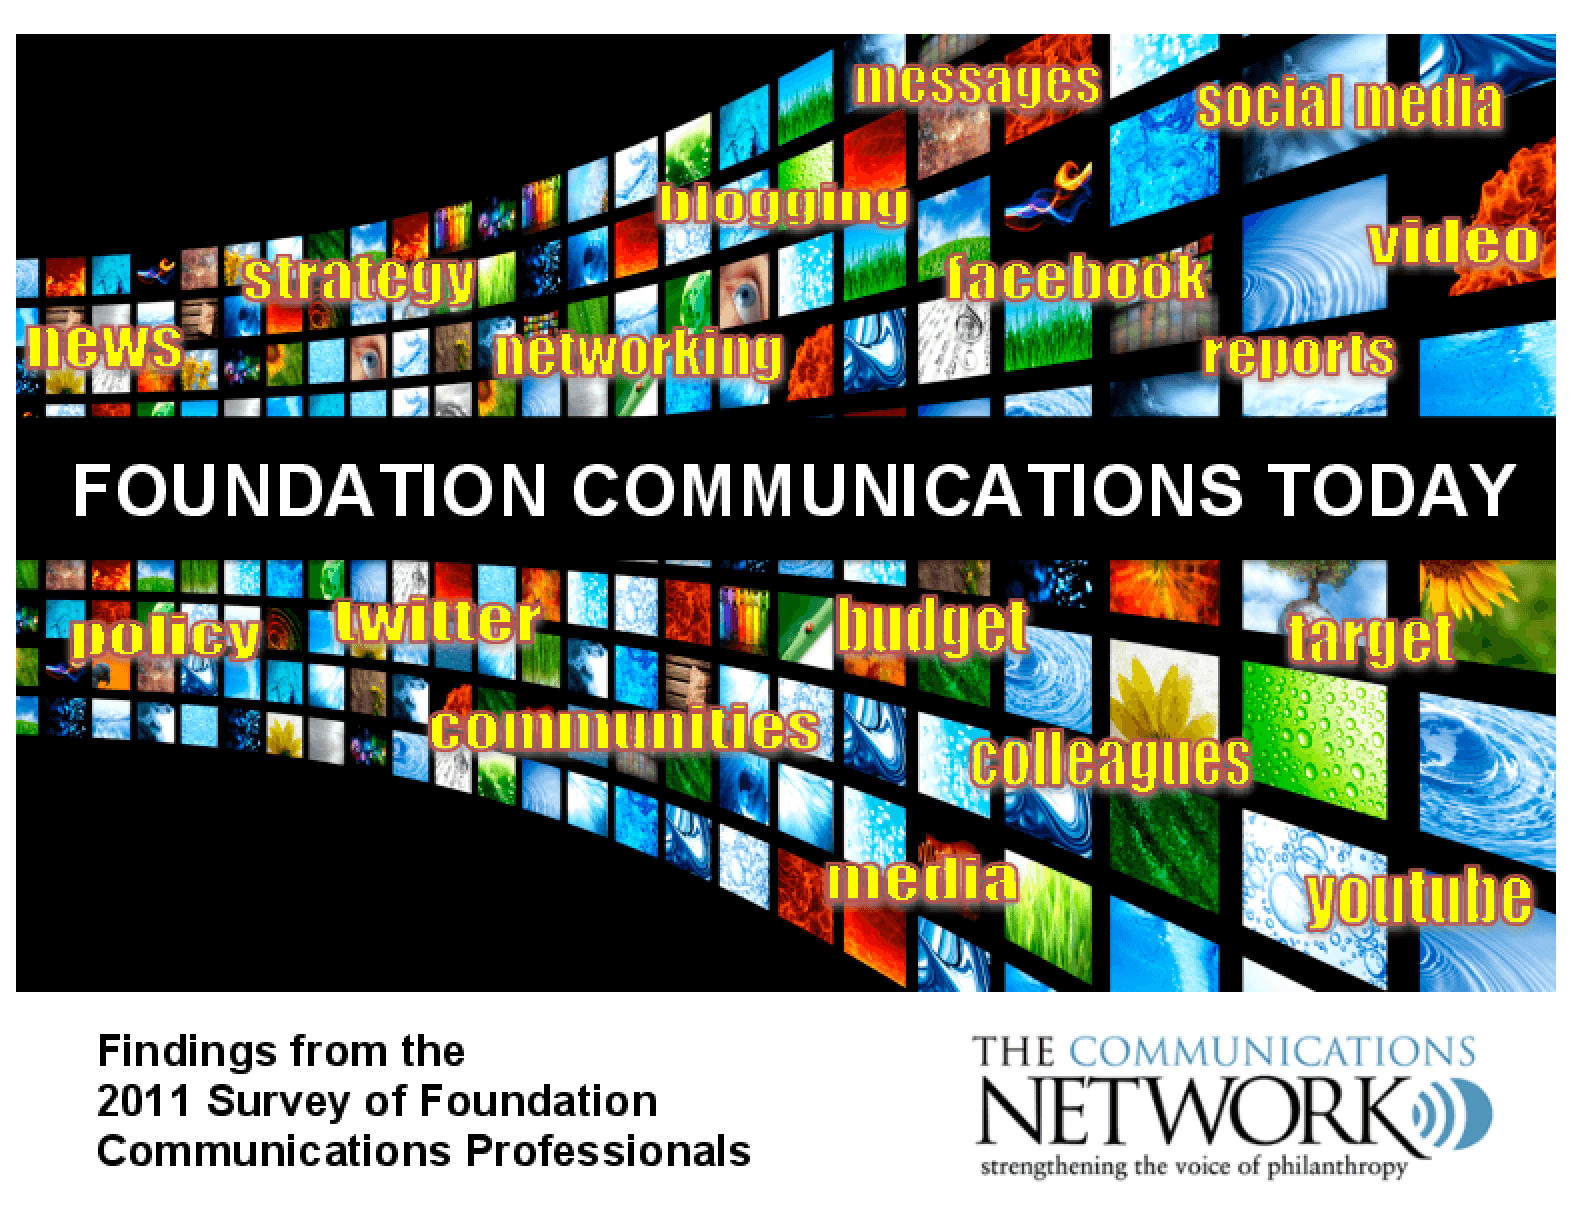 Foundation Communications Today: Findings from the 2011 Survey of Foundation Communications Professionals